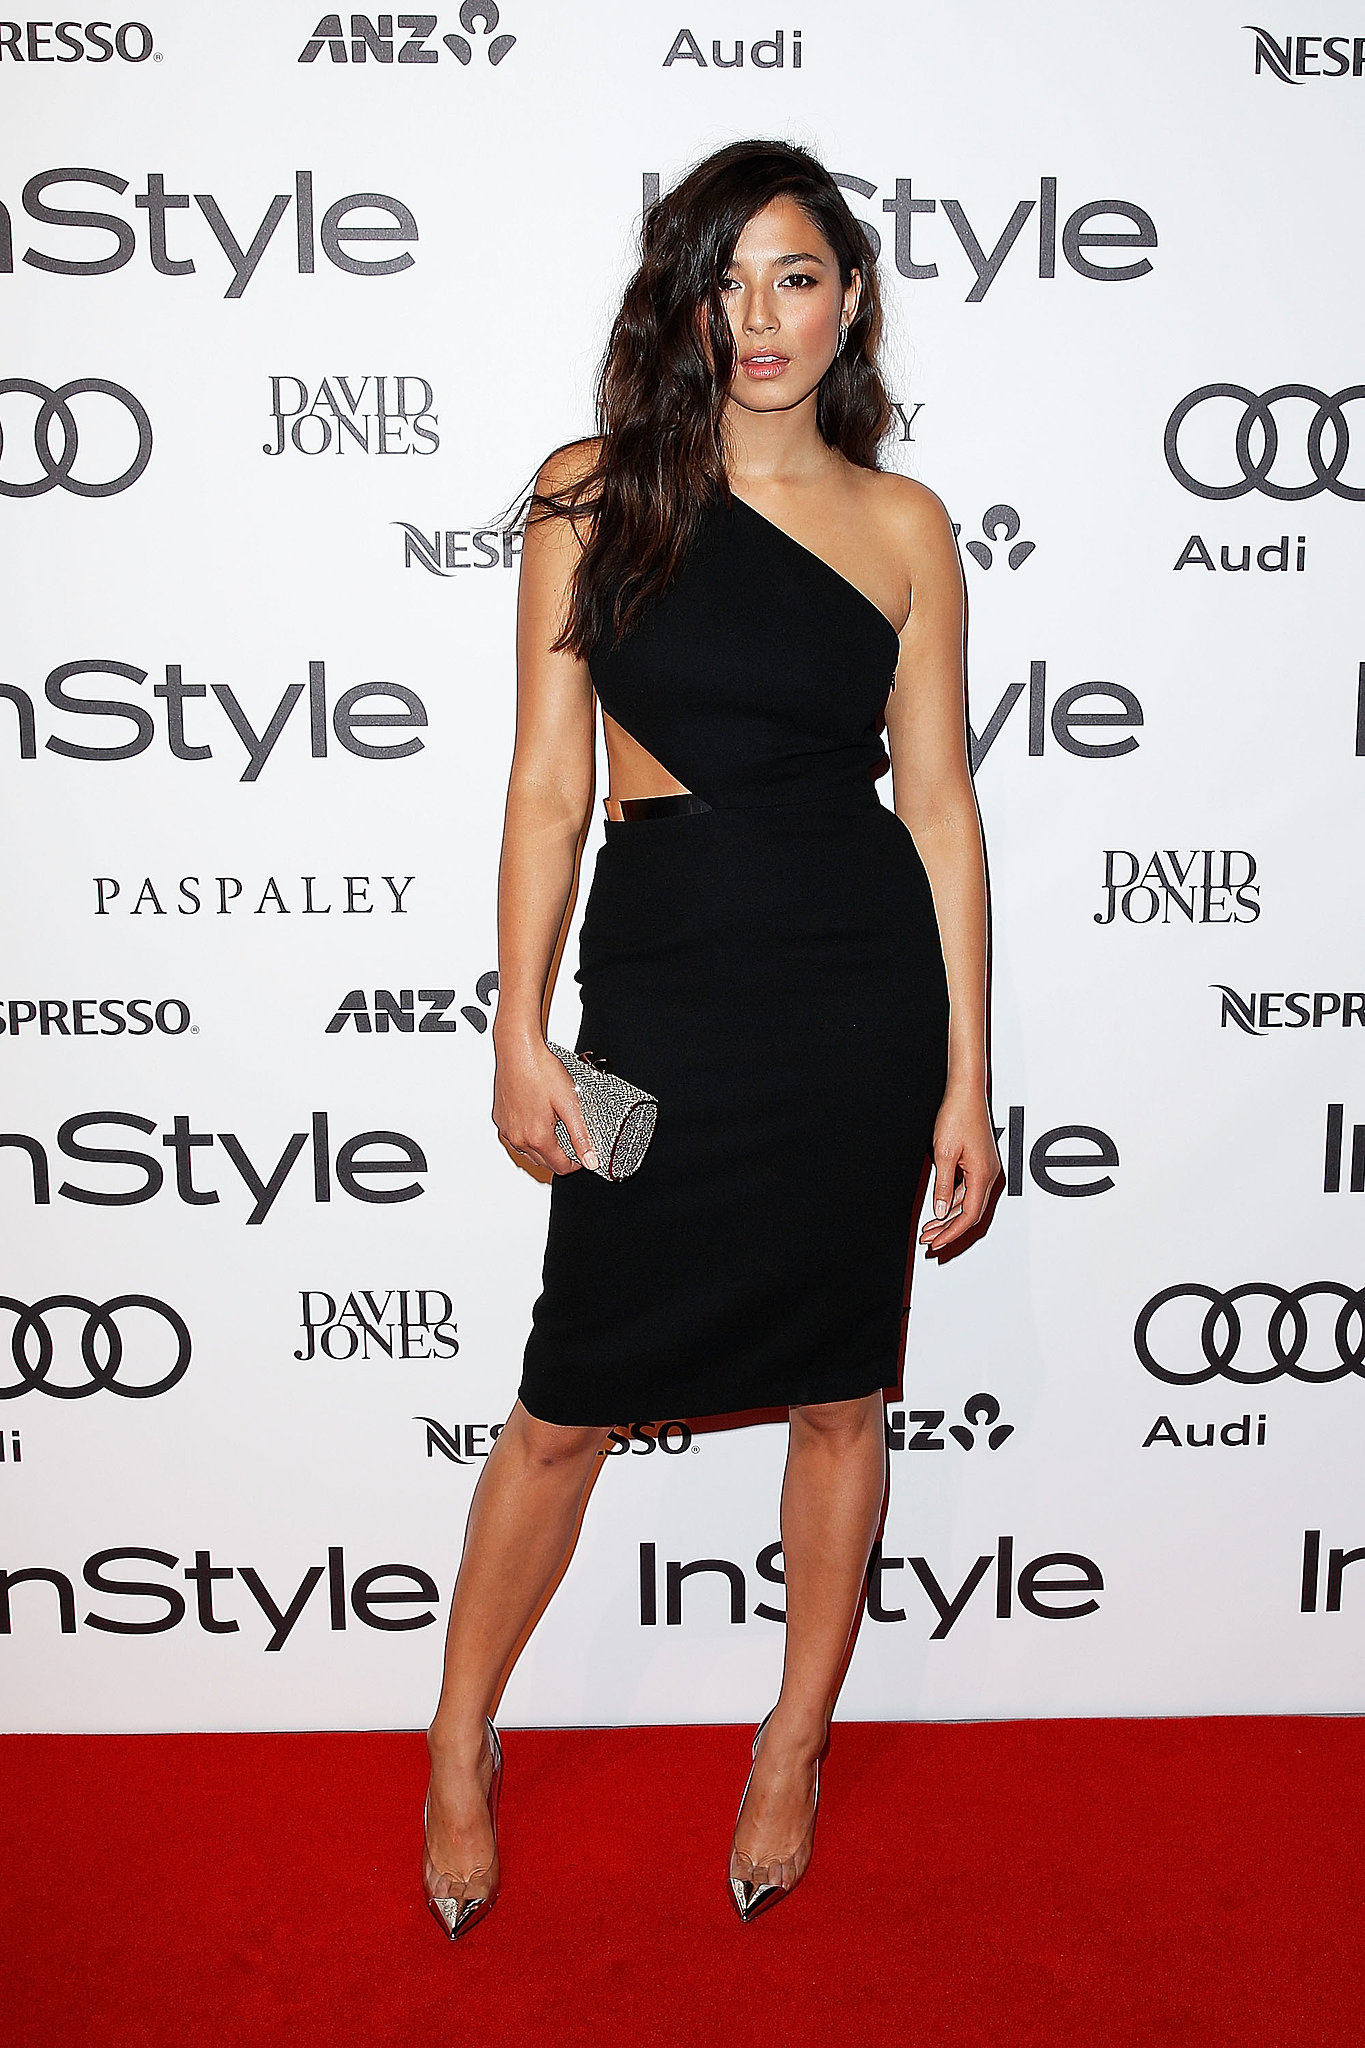 Dress and Christian Louboutin Shoes at the 2014 Instyle Women of Style